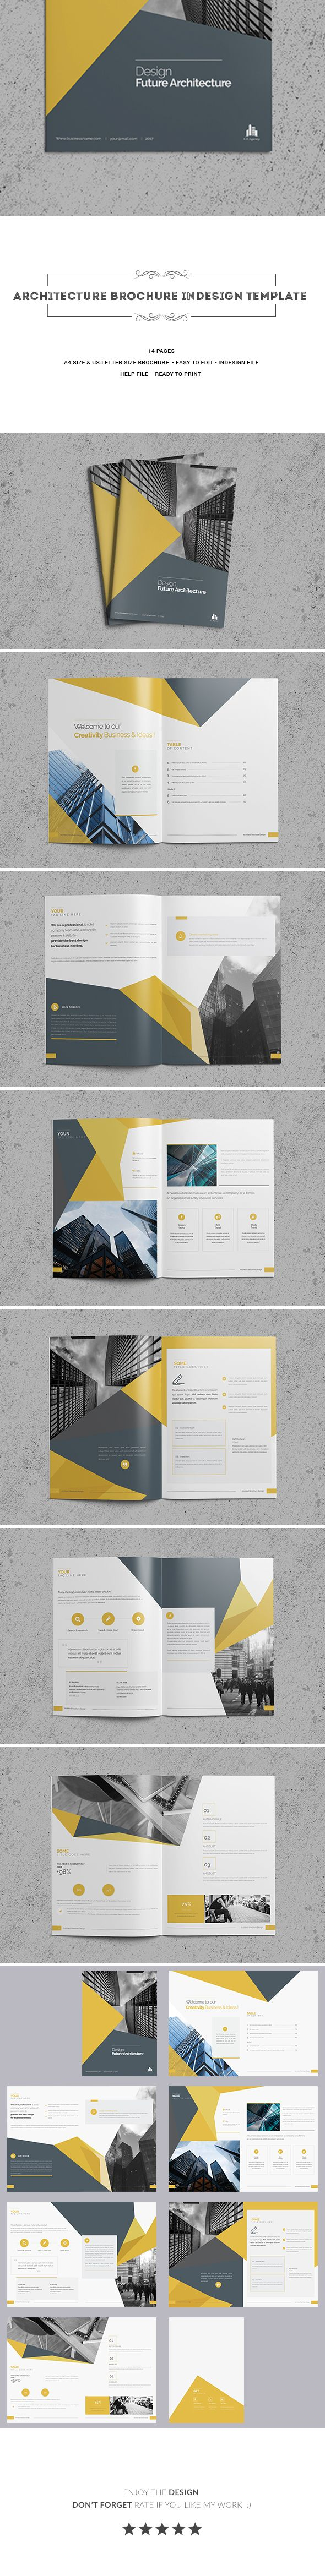 26 best Brochure Indesign Template images on Pinterest | Folletos ...